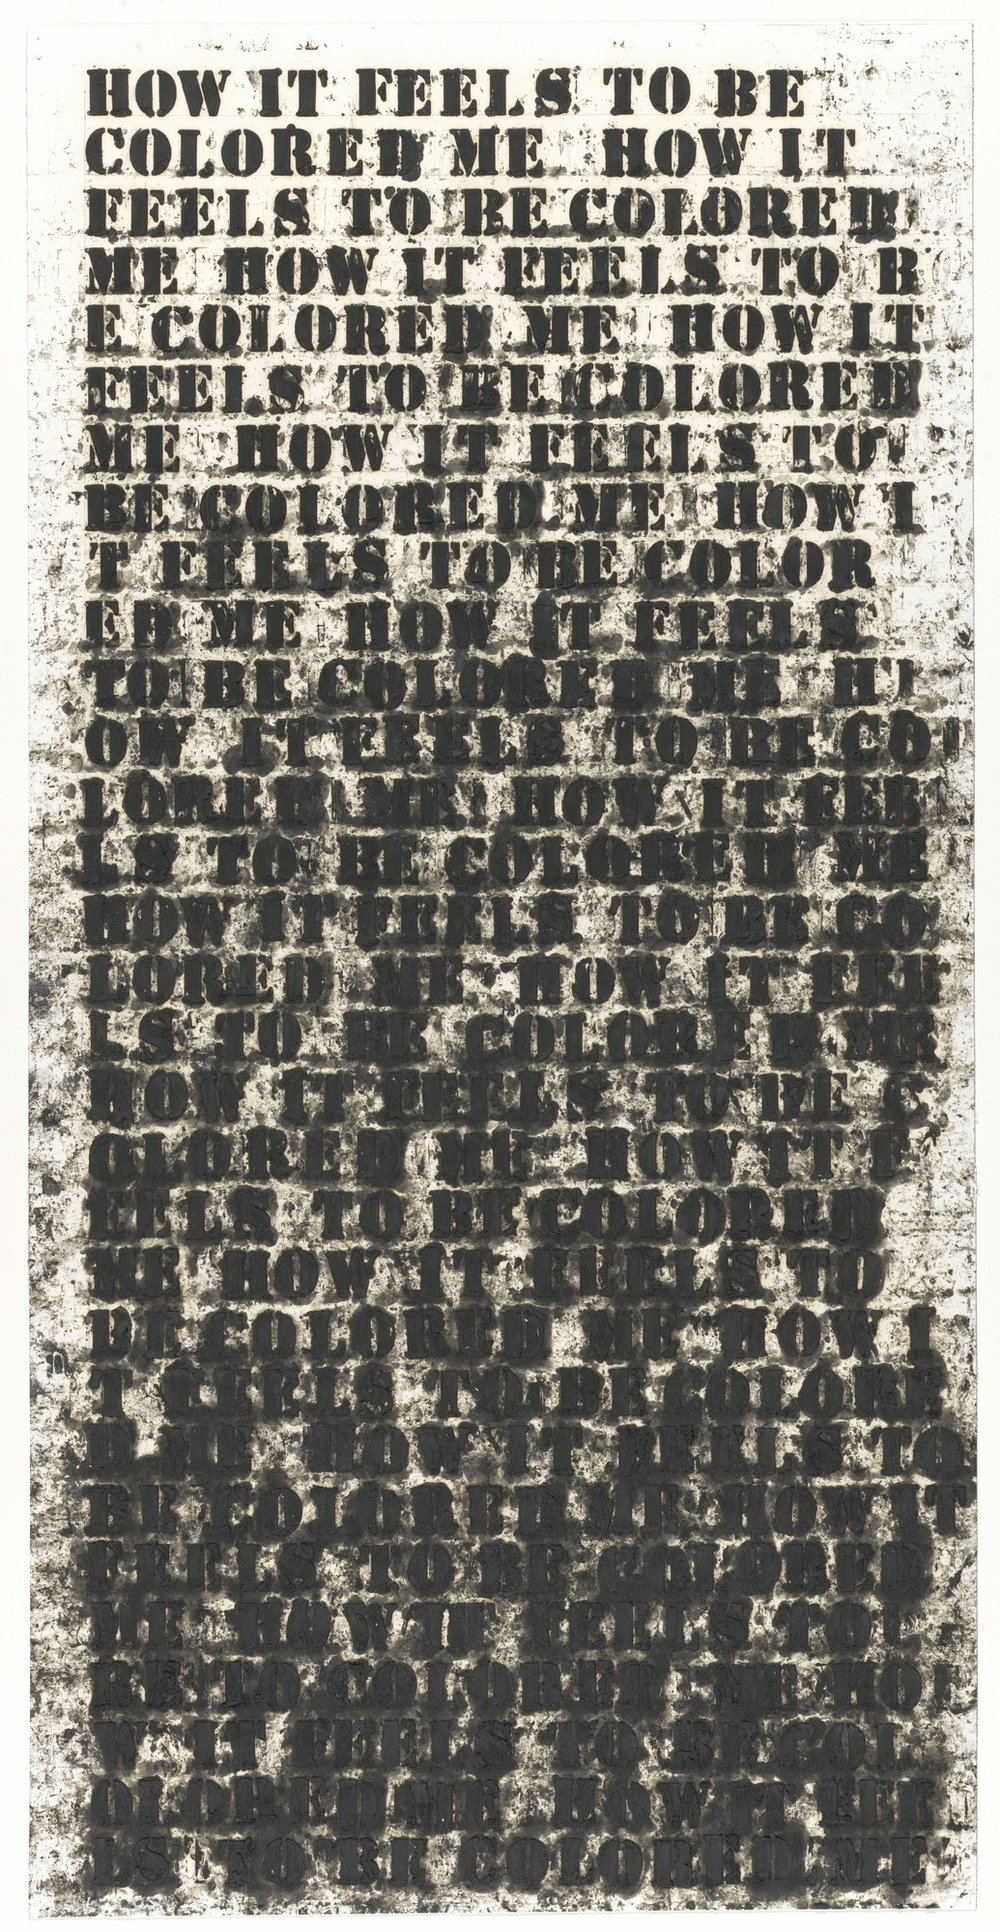 Glenn Ligon Untitled (How It Feels to be Colored Me) (1991) | PC: moma.org